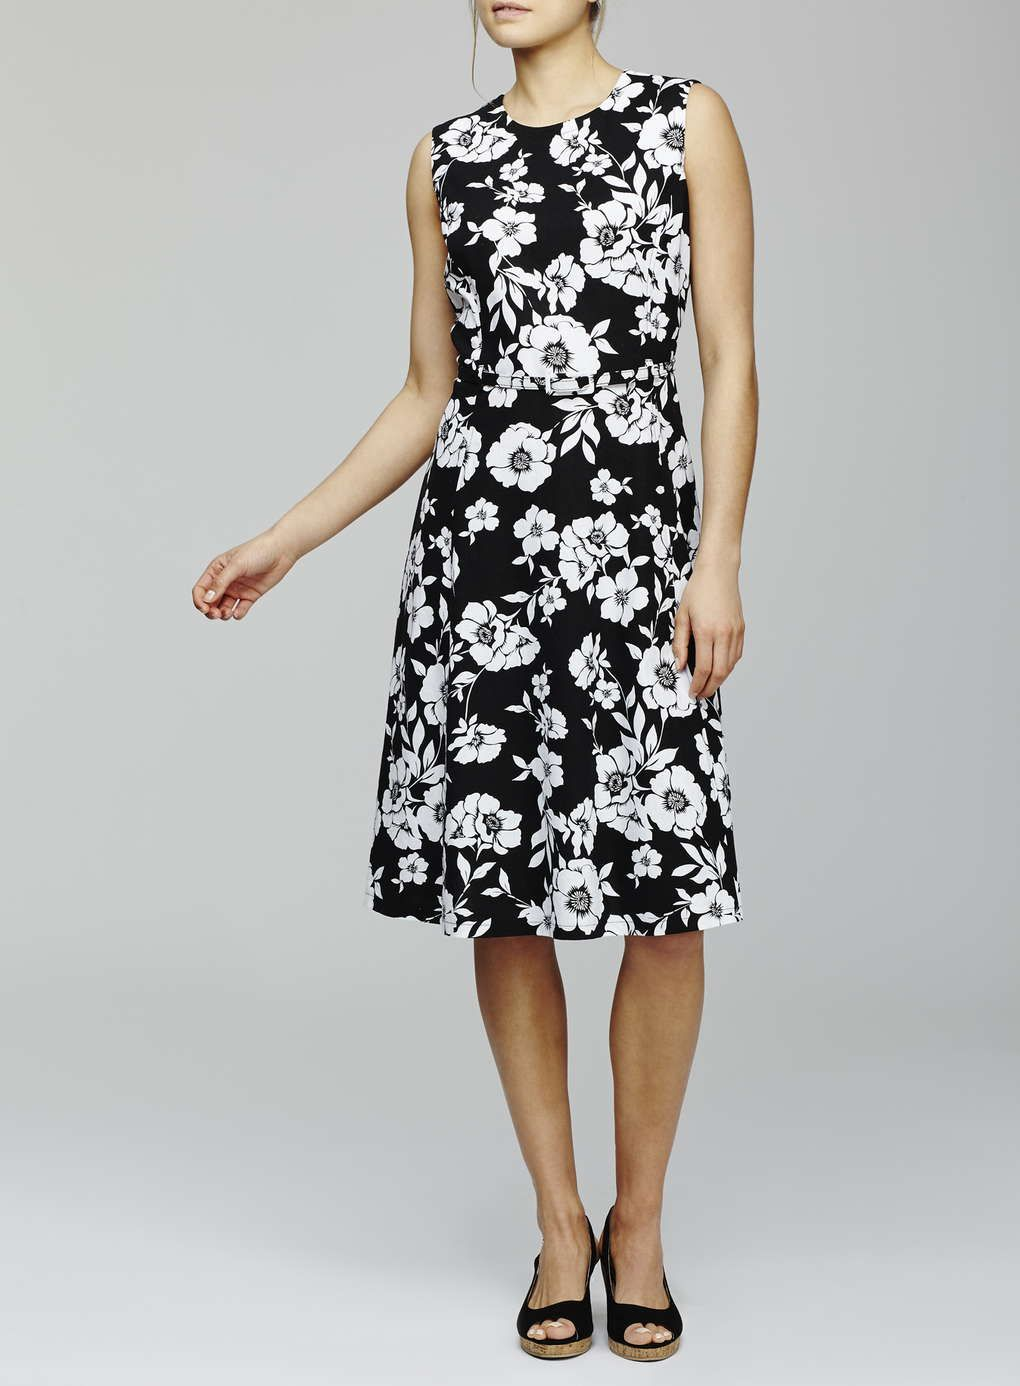 Floral Fit And Flare Linen Skater Dress, Monochrome